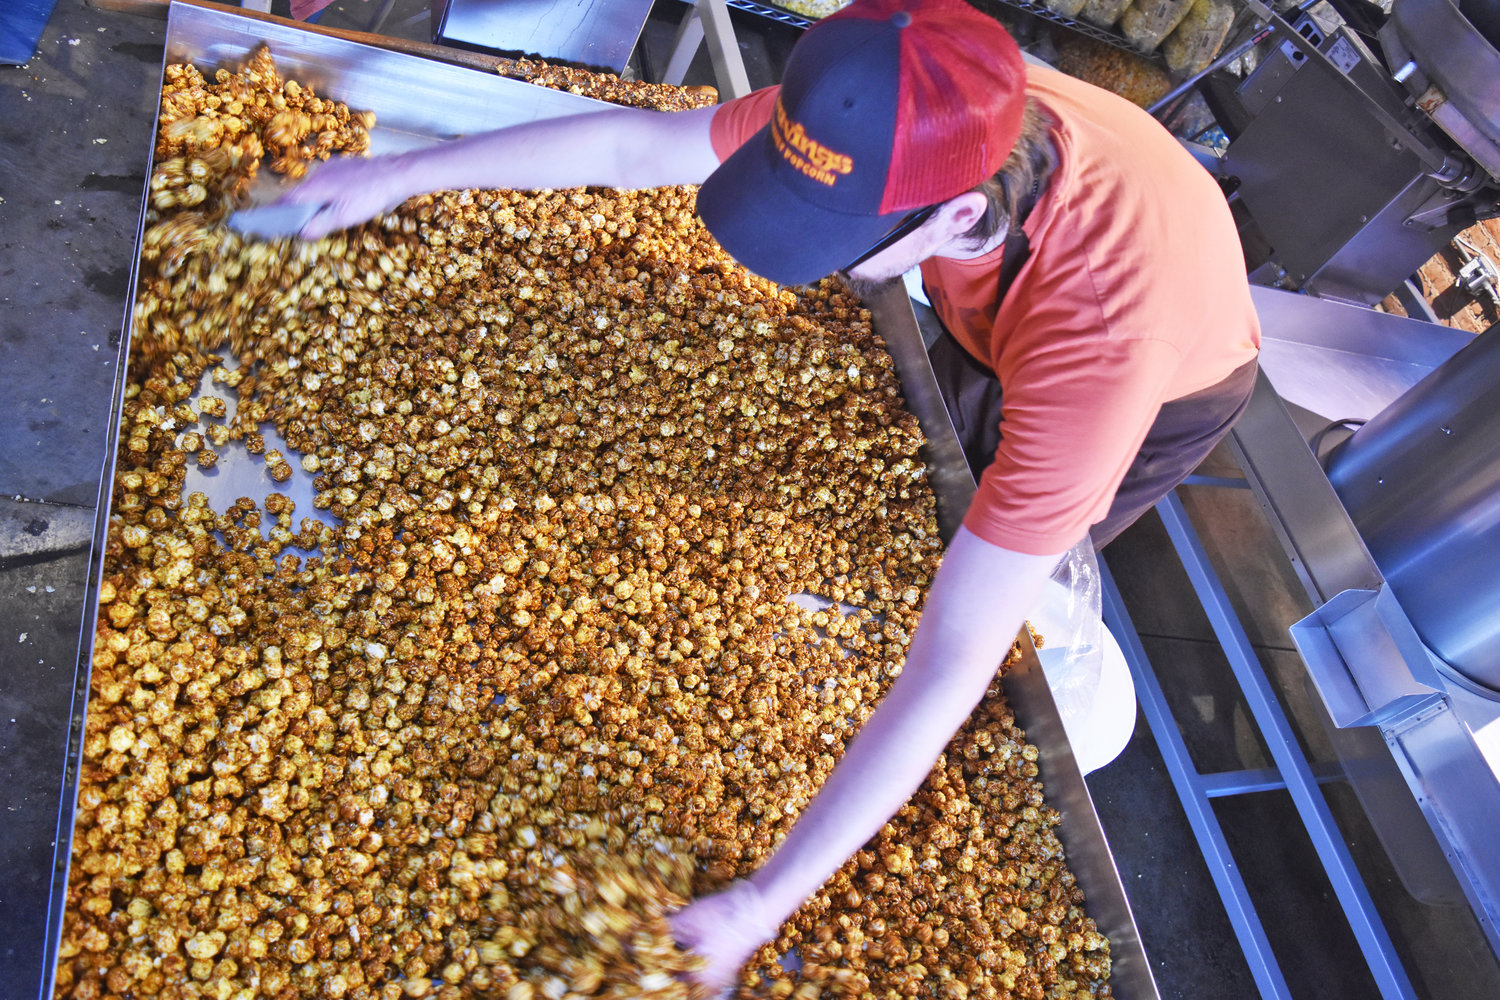 Cravings Gourmet Popcorn's caramel corn recipe is tested and refined on a monthly basis.